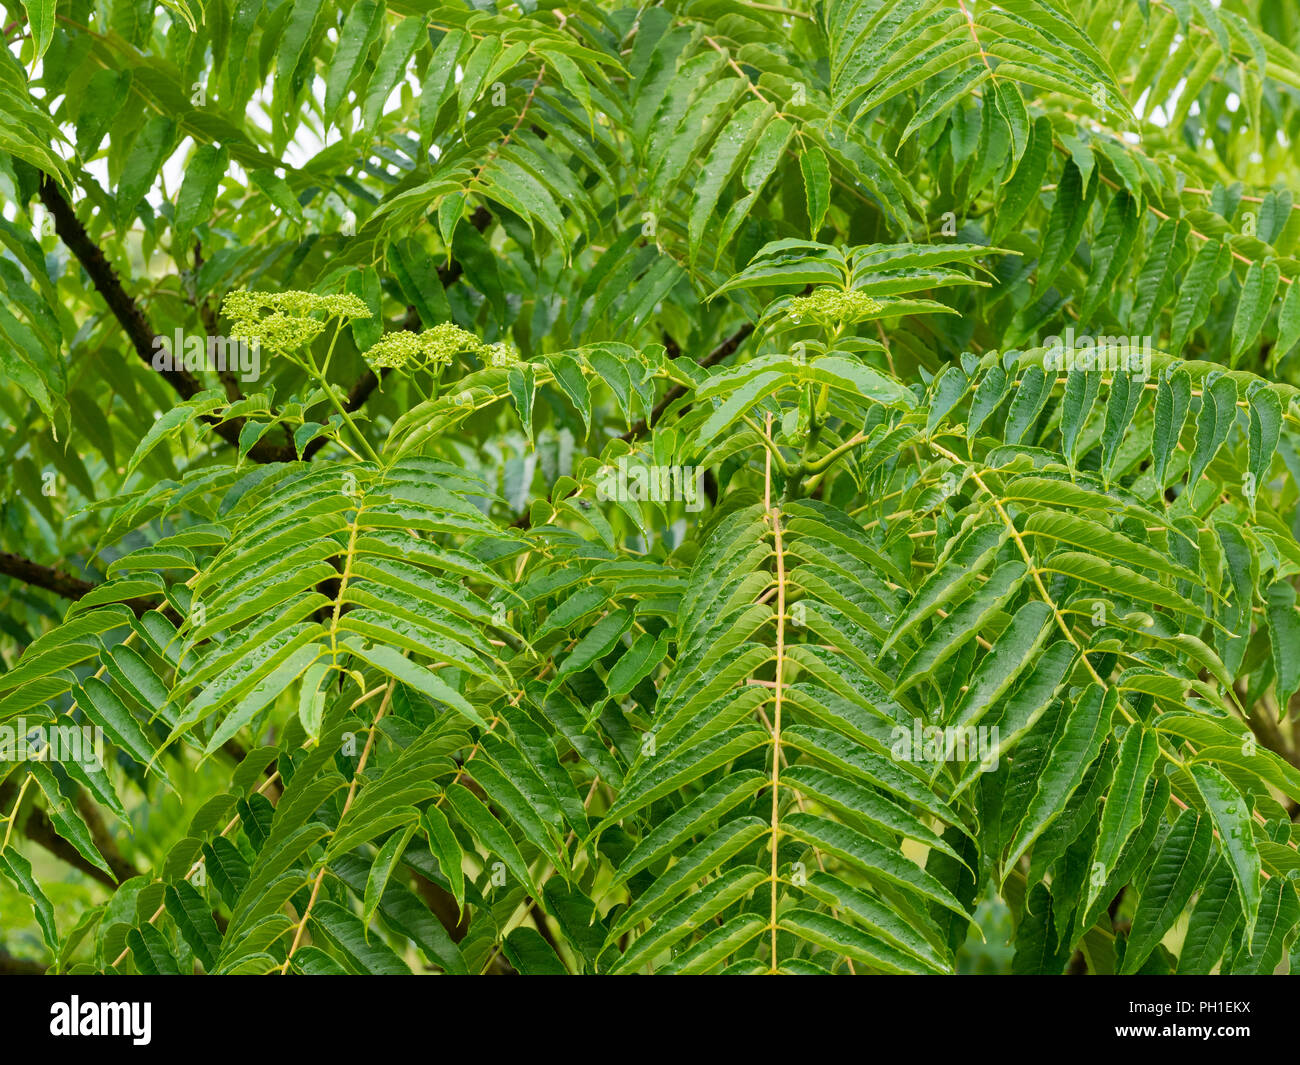 Pinnate foliage and late summer flowers of the half hardy prickly ash tree, Zanthoxylum ailanthoides - Stock Image